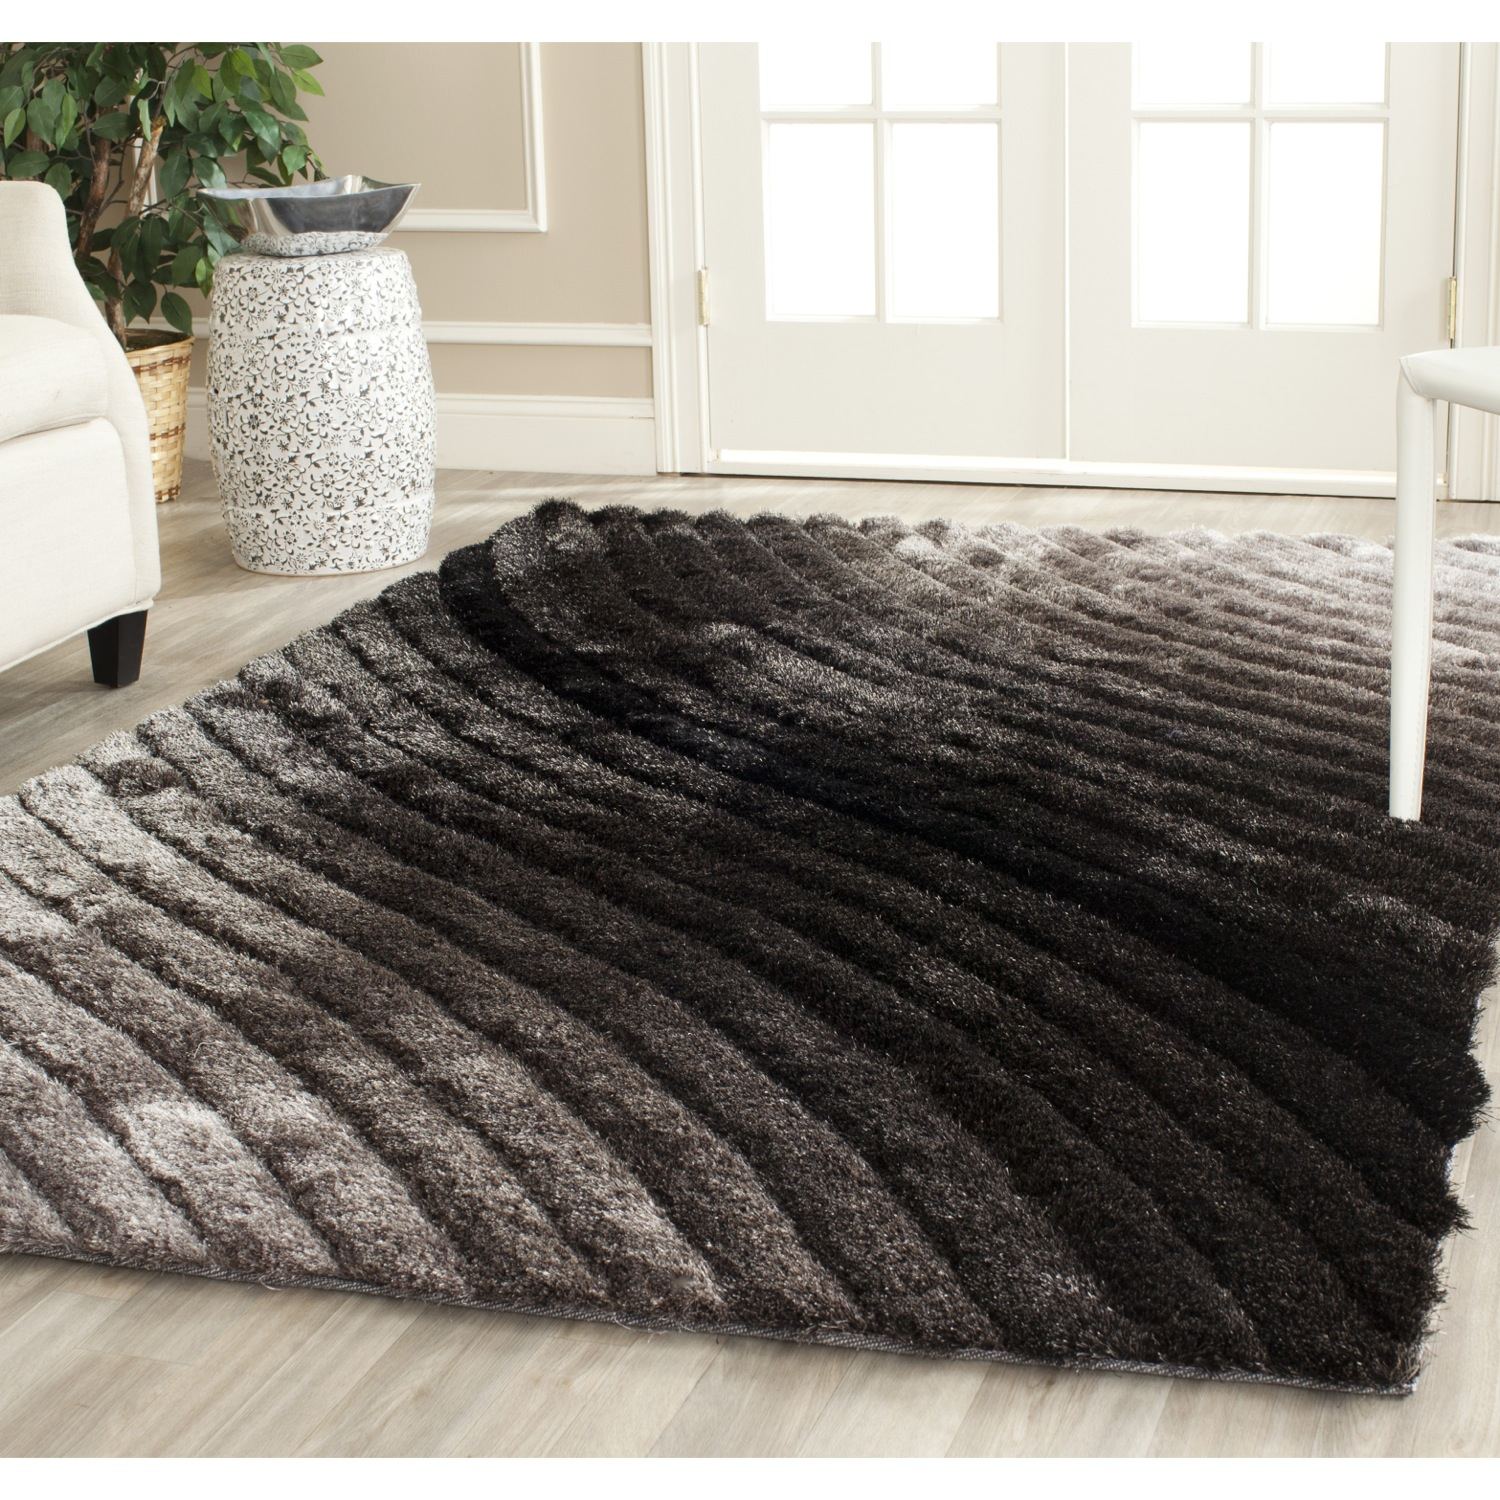 Discount Shag Area Rugs Decor IdeasDecor Ideas